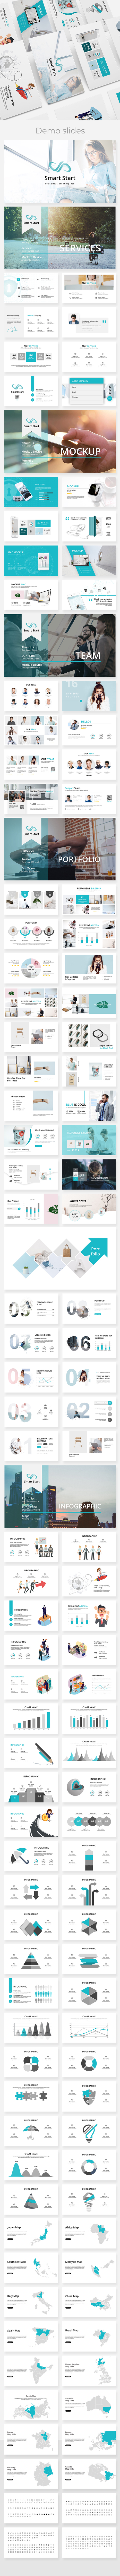 Smart Start - Multipurpose Google Slide Template - Google Slides Presentation Templates